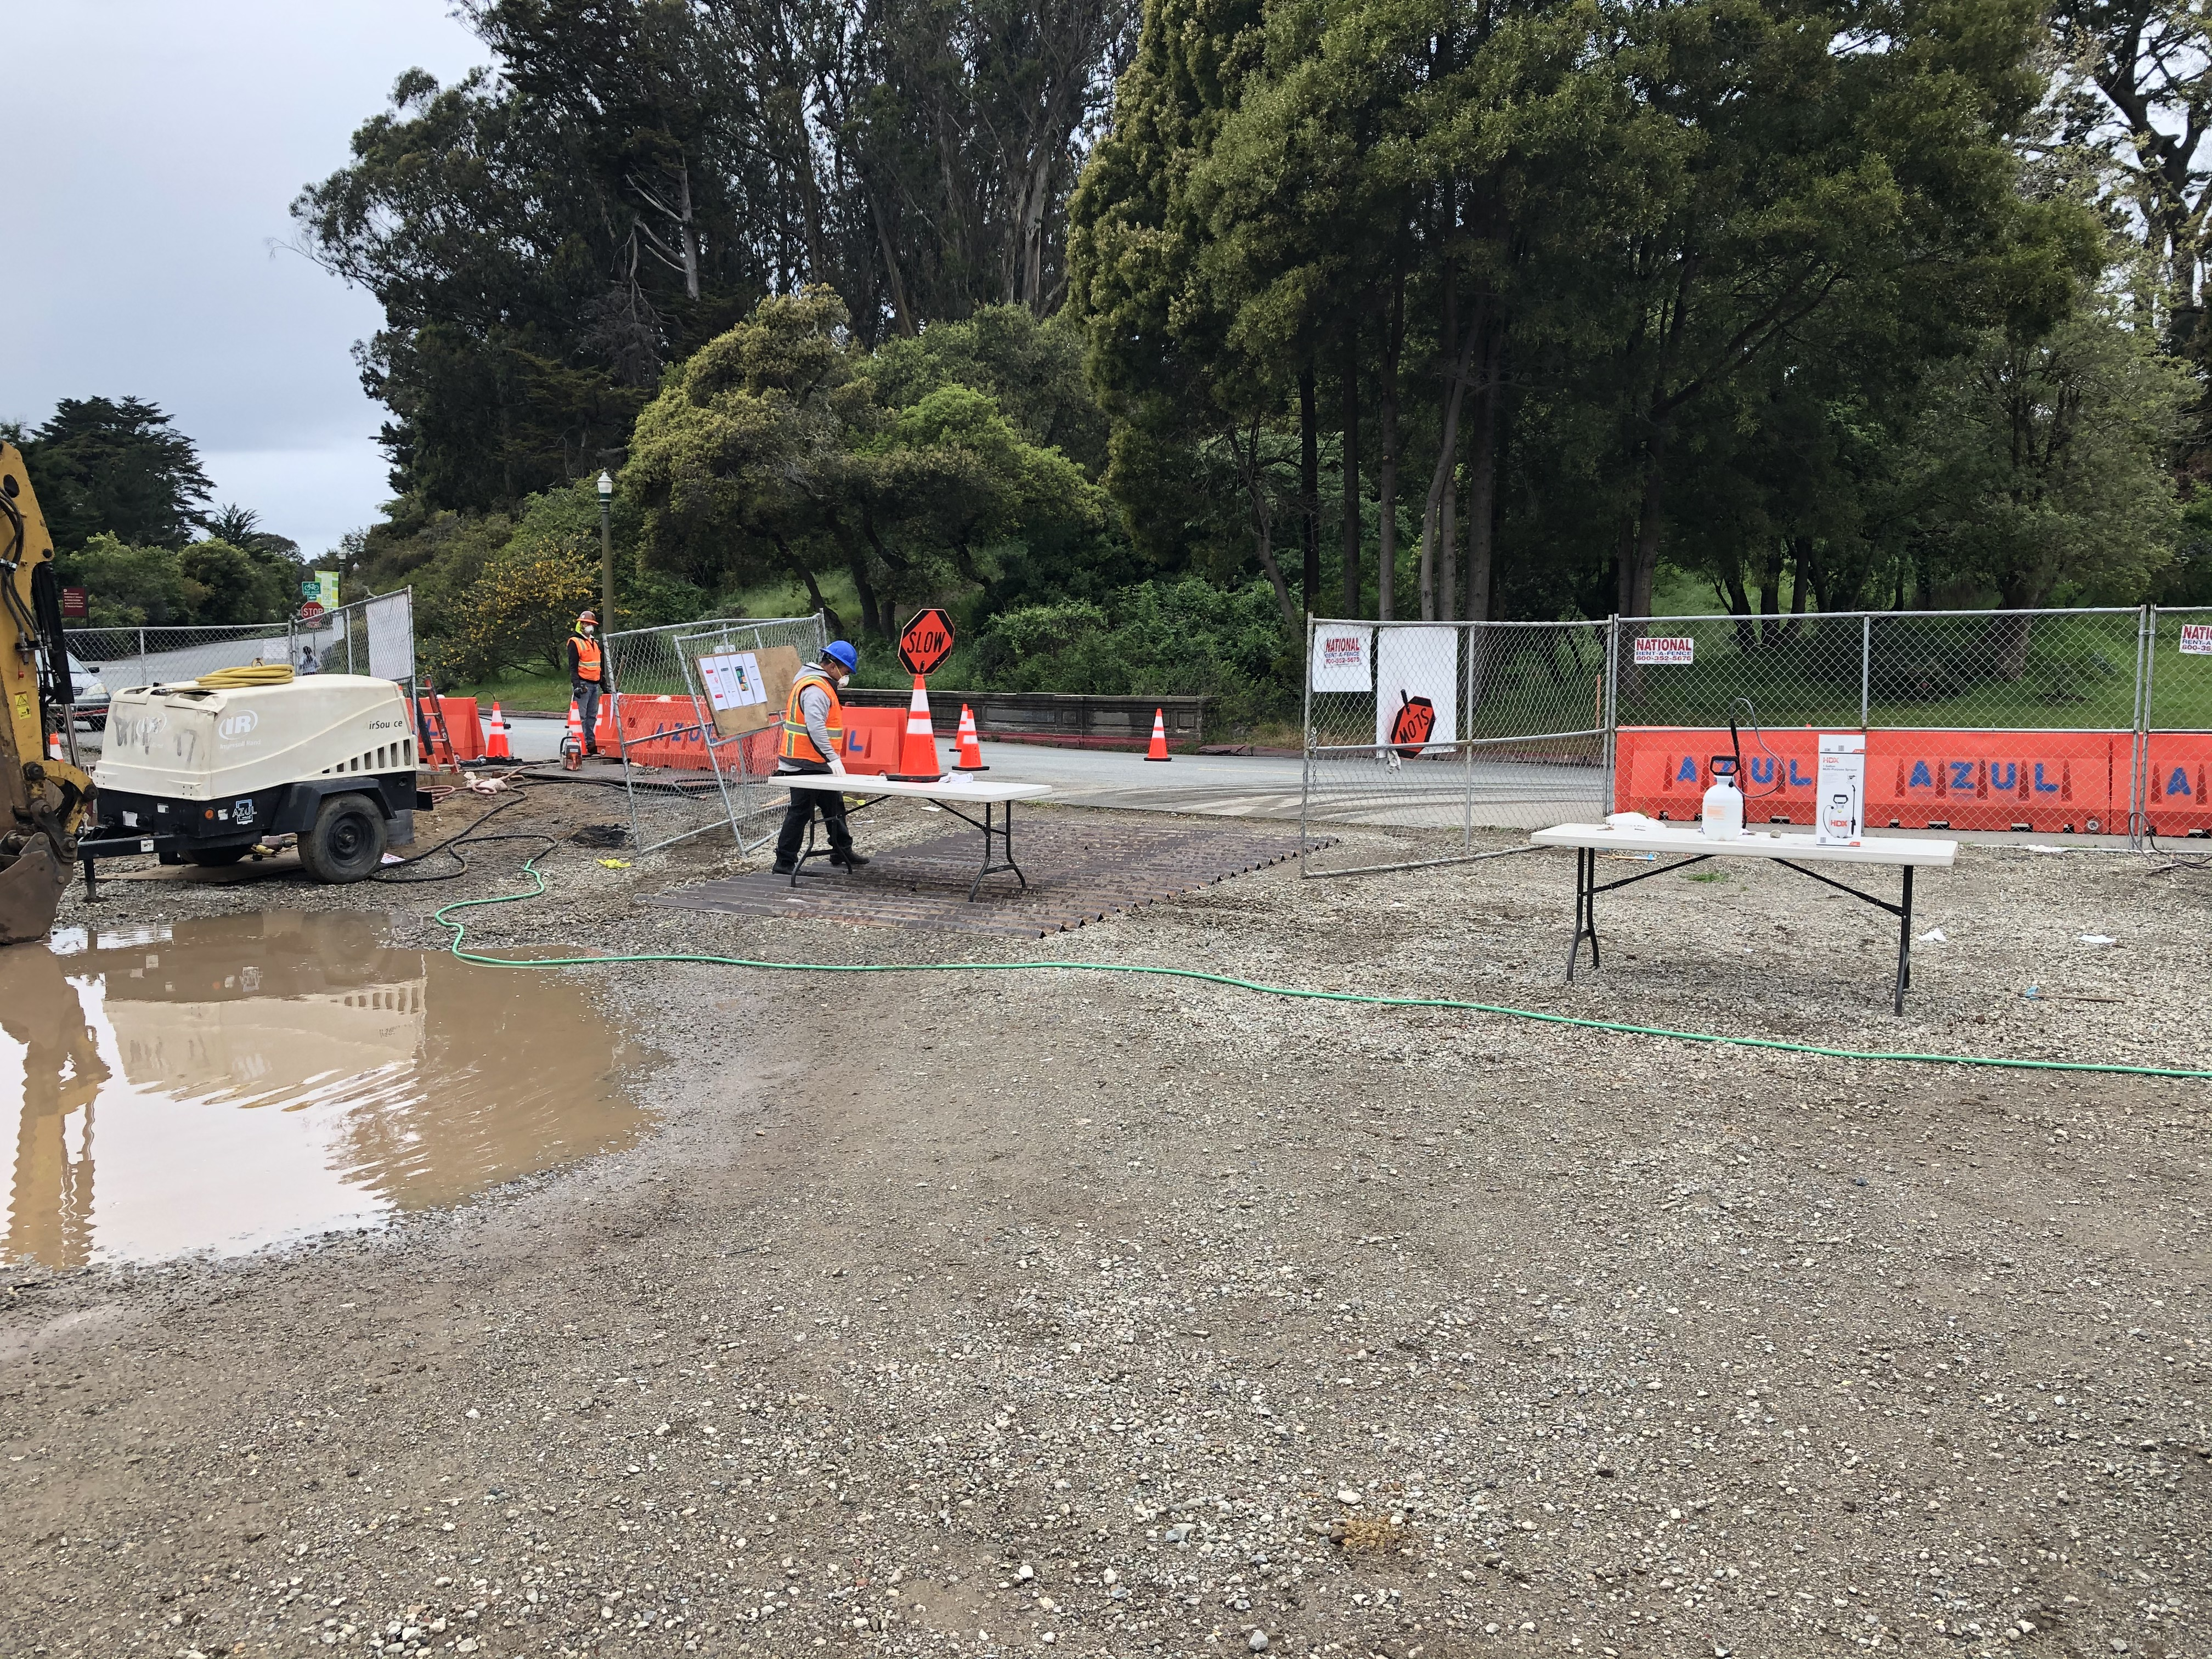 Golden Gate Park Tennis Center Construction June 2020